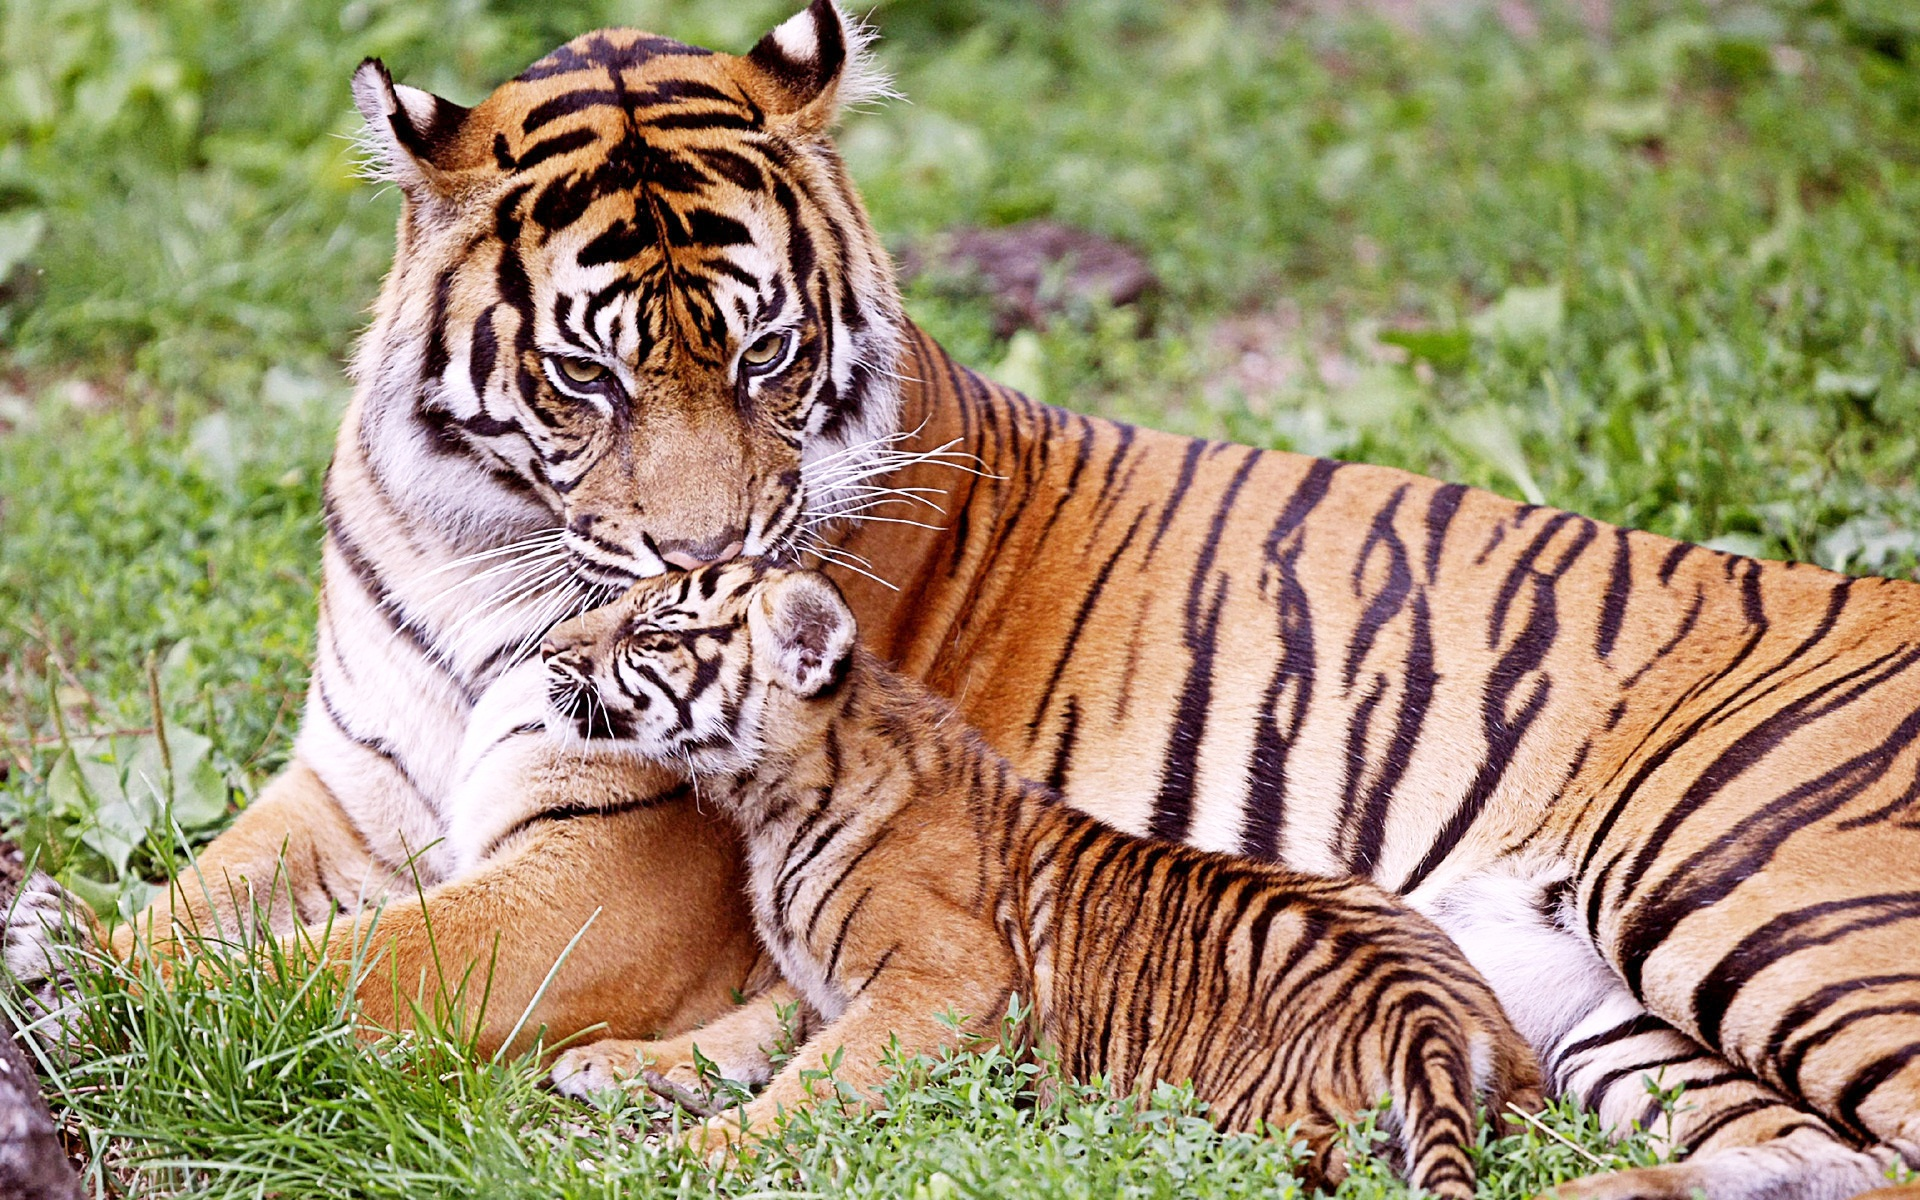 Tiger & Baby Tiger Wallpapers   HD Wallpapers